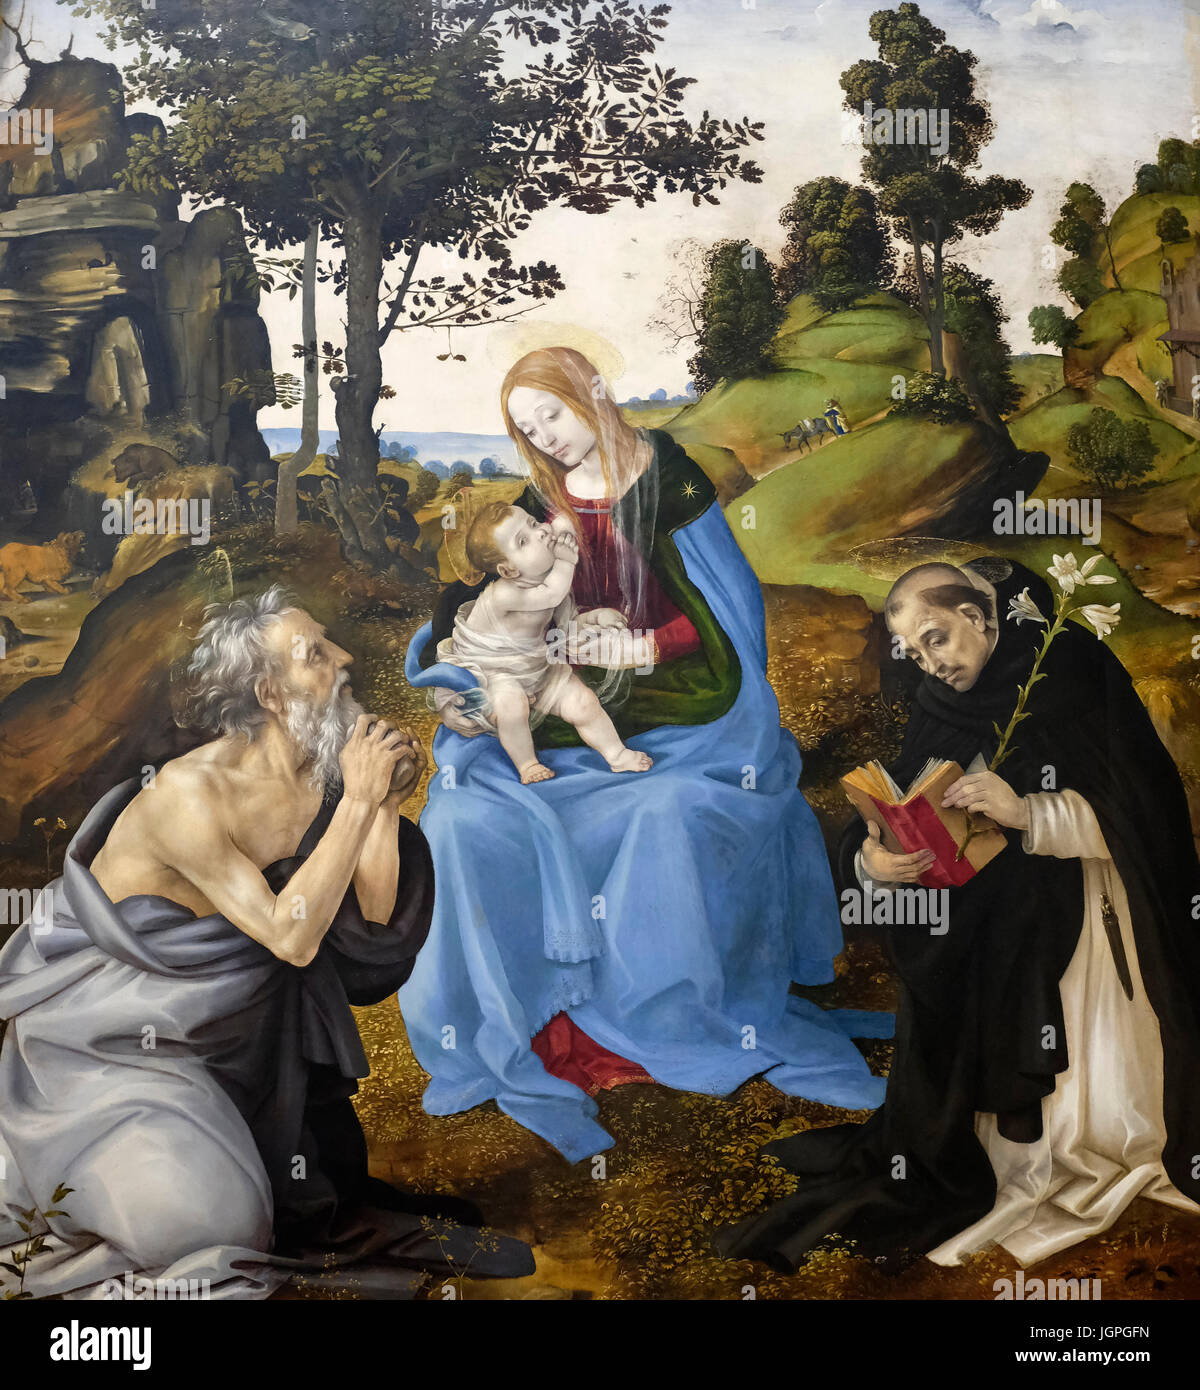 The Virgin and Child with Saints Jerome and Dominic by Filippino Lippi, circa 1485 - Stock Image